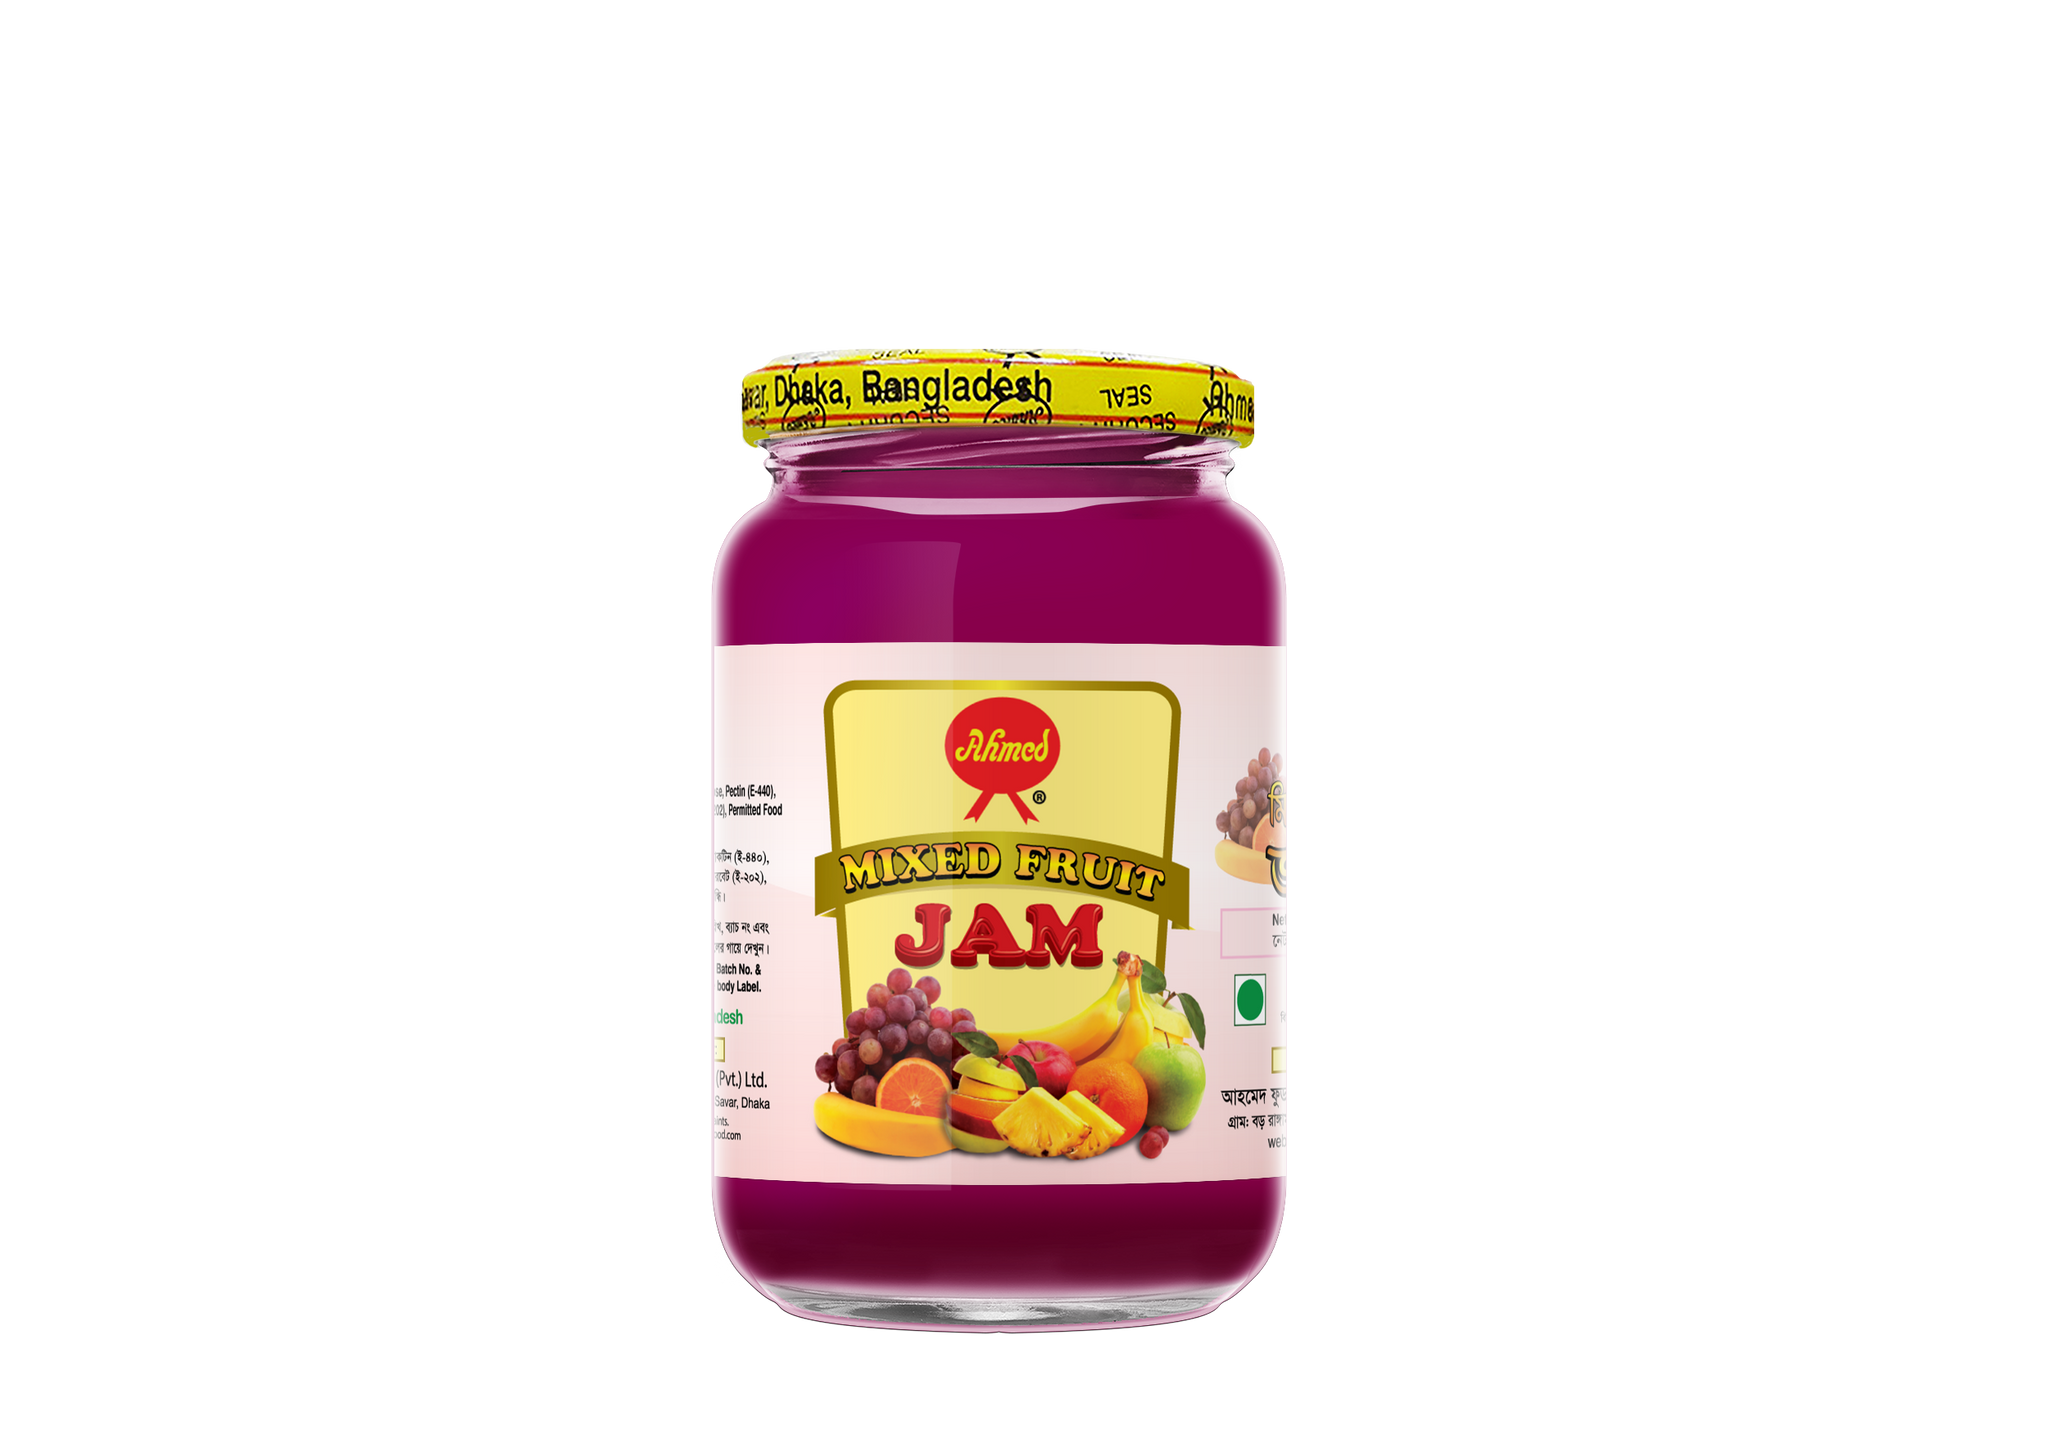 Ahmed Mixed Fruit Jam 250 gm